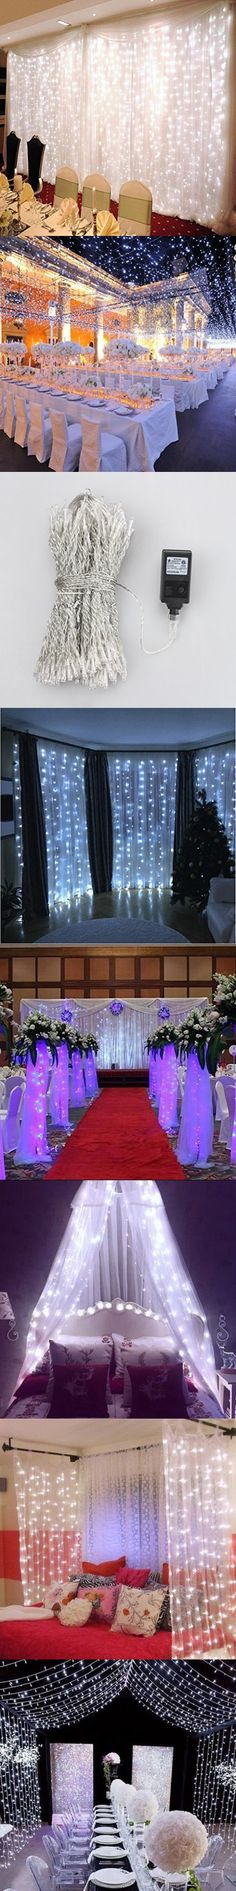 DLPIN Safe Low Voltage 24V 300LED with ETL Plug Window Curtain String Lights 8 Modes Setting for Wedding Party Christmas Garden Home Decoration 9.8FT - White